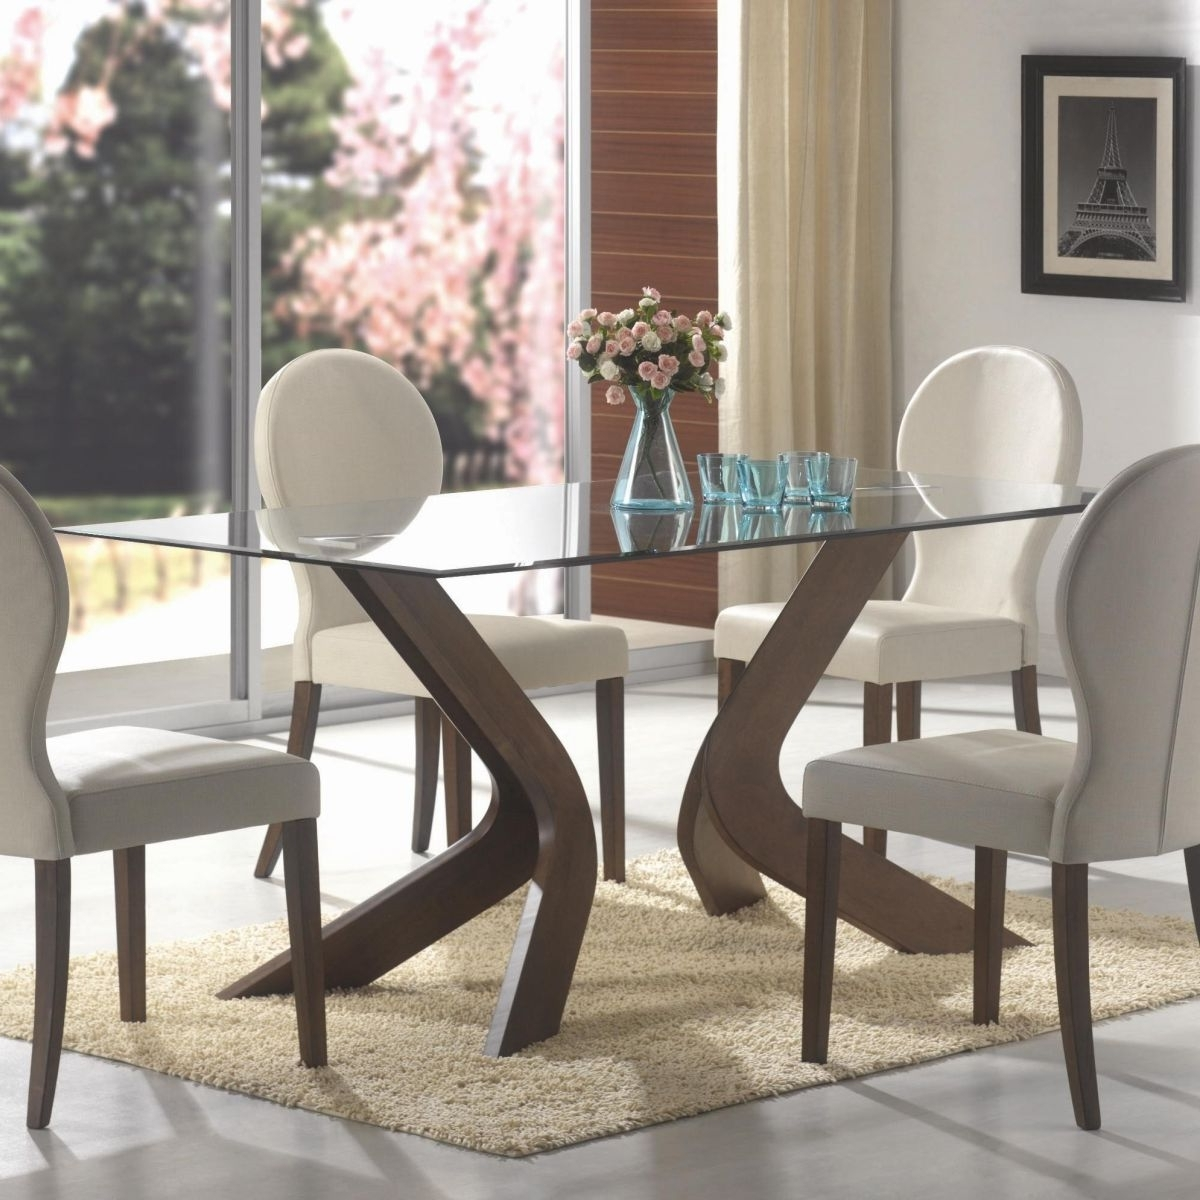 Glass And Oak Dining Tables And Chairs Pertaining To Widely Used Dining Room Contemporary Glass Top Dining Table Oak Dining Room (View 12 of 25)